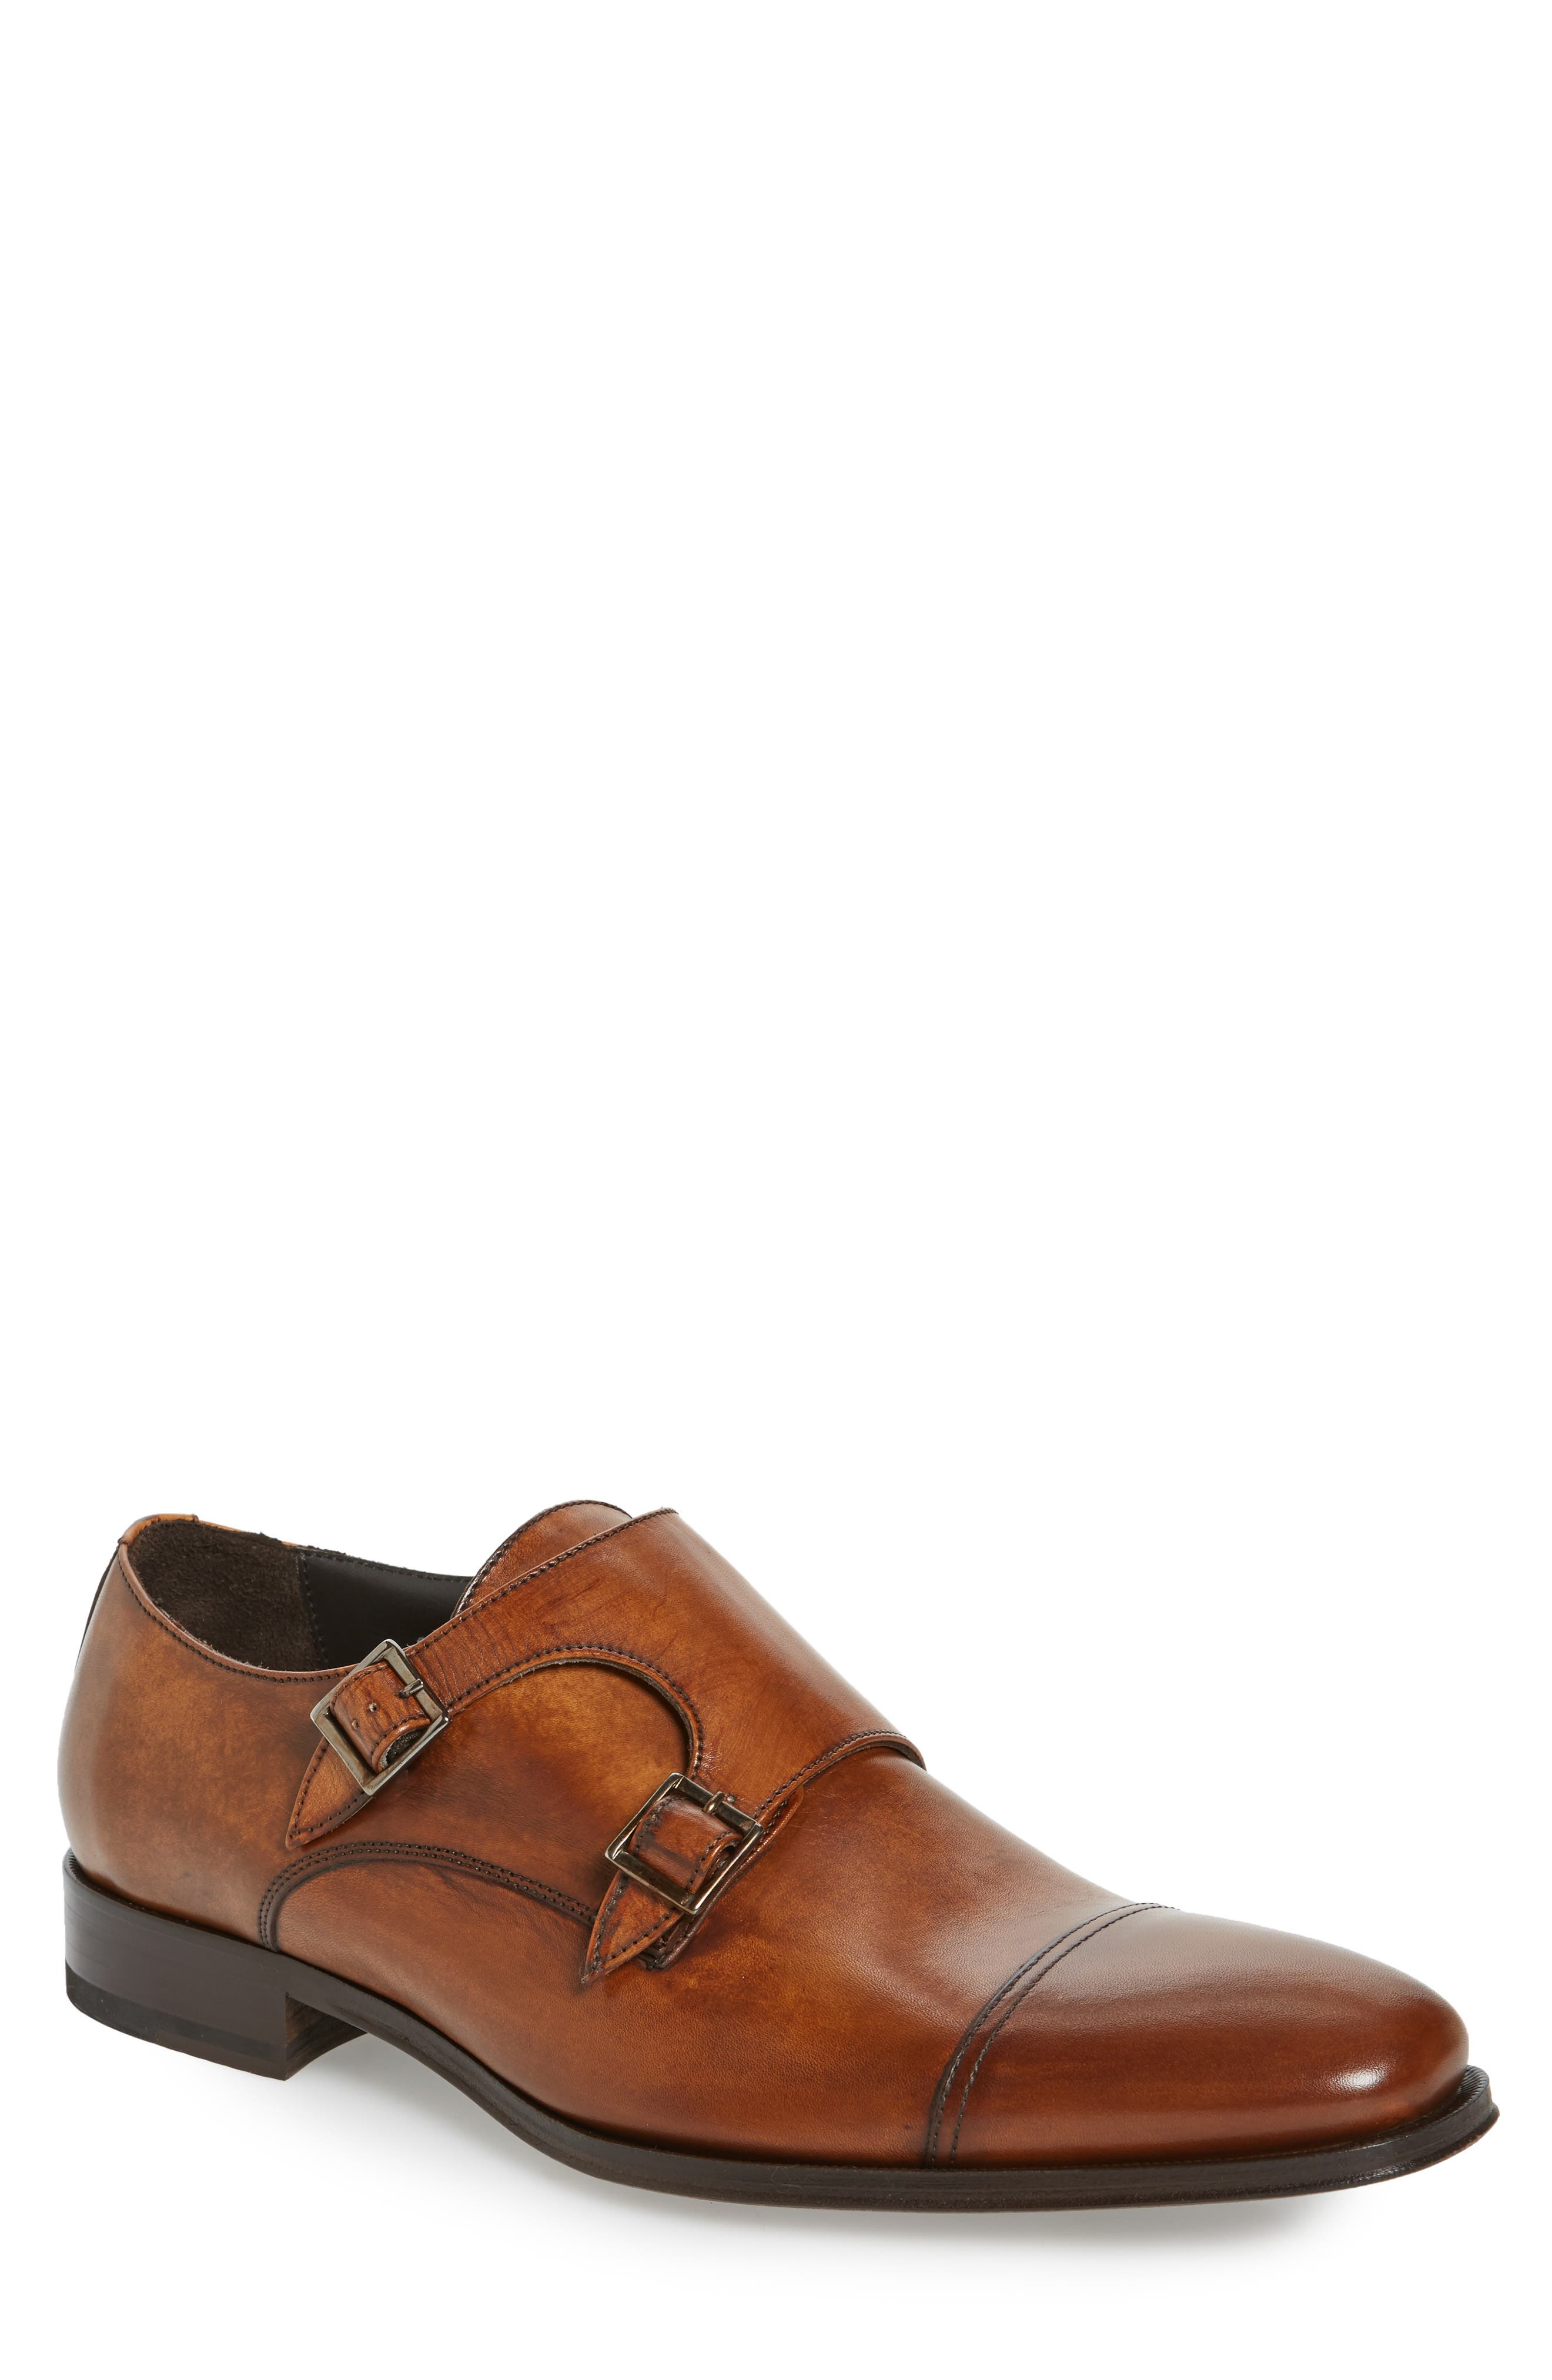 Main Image - To Boot New York 'Grant' Double Monk Shoe